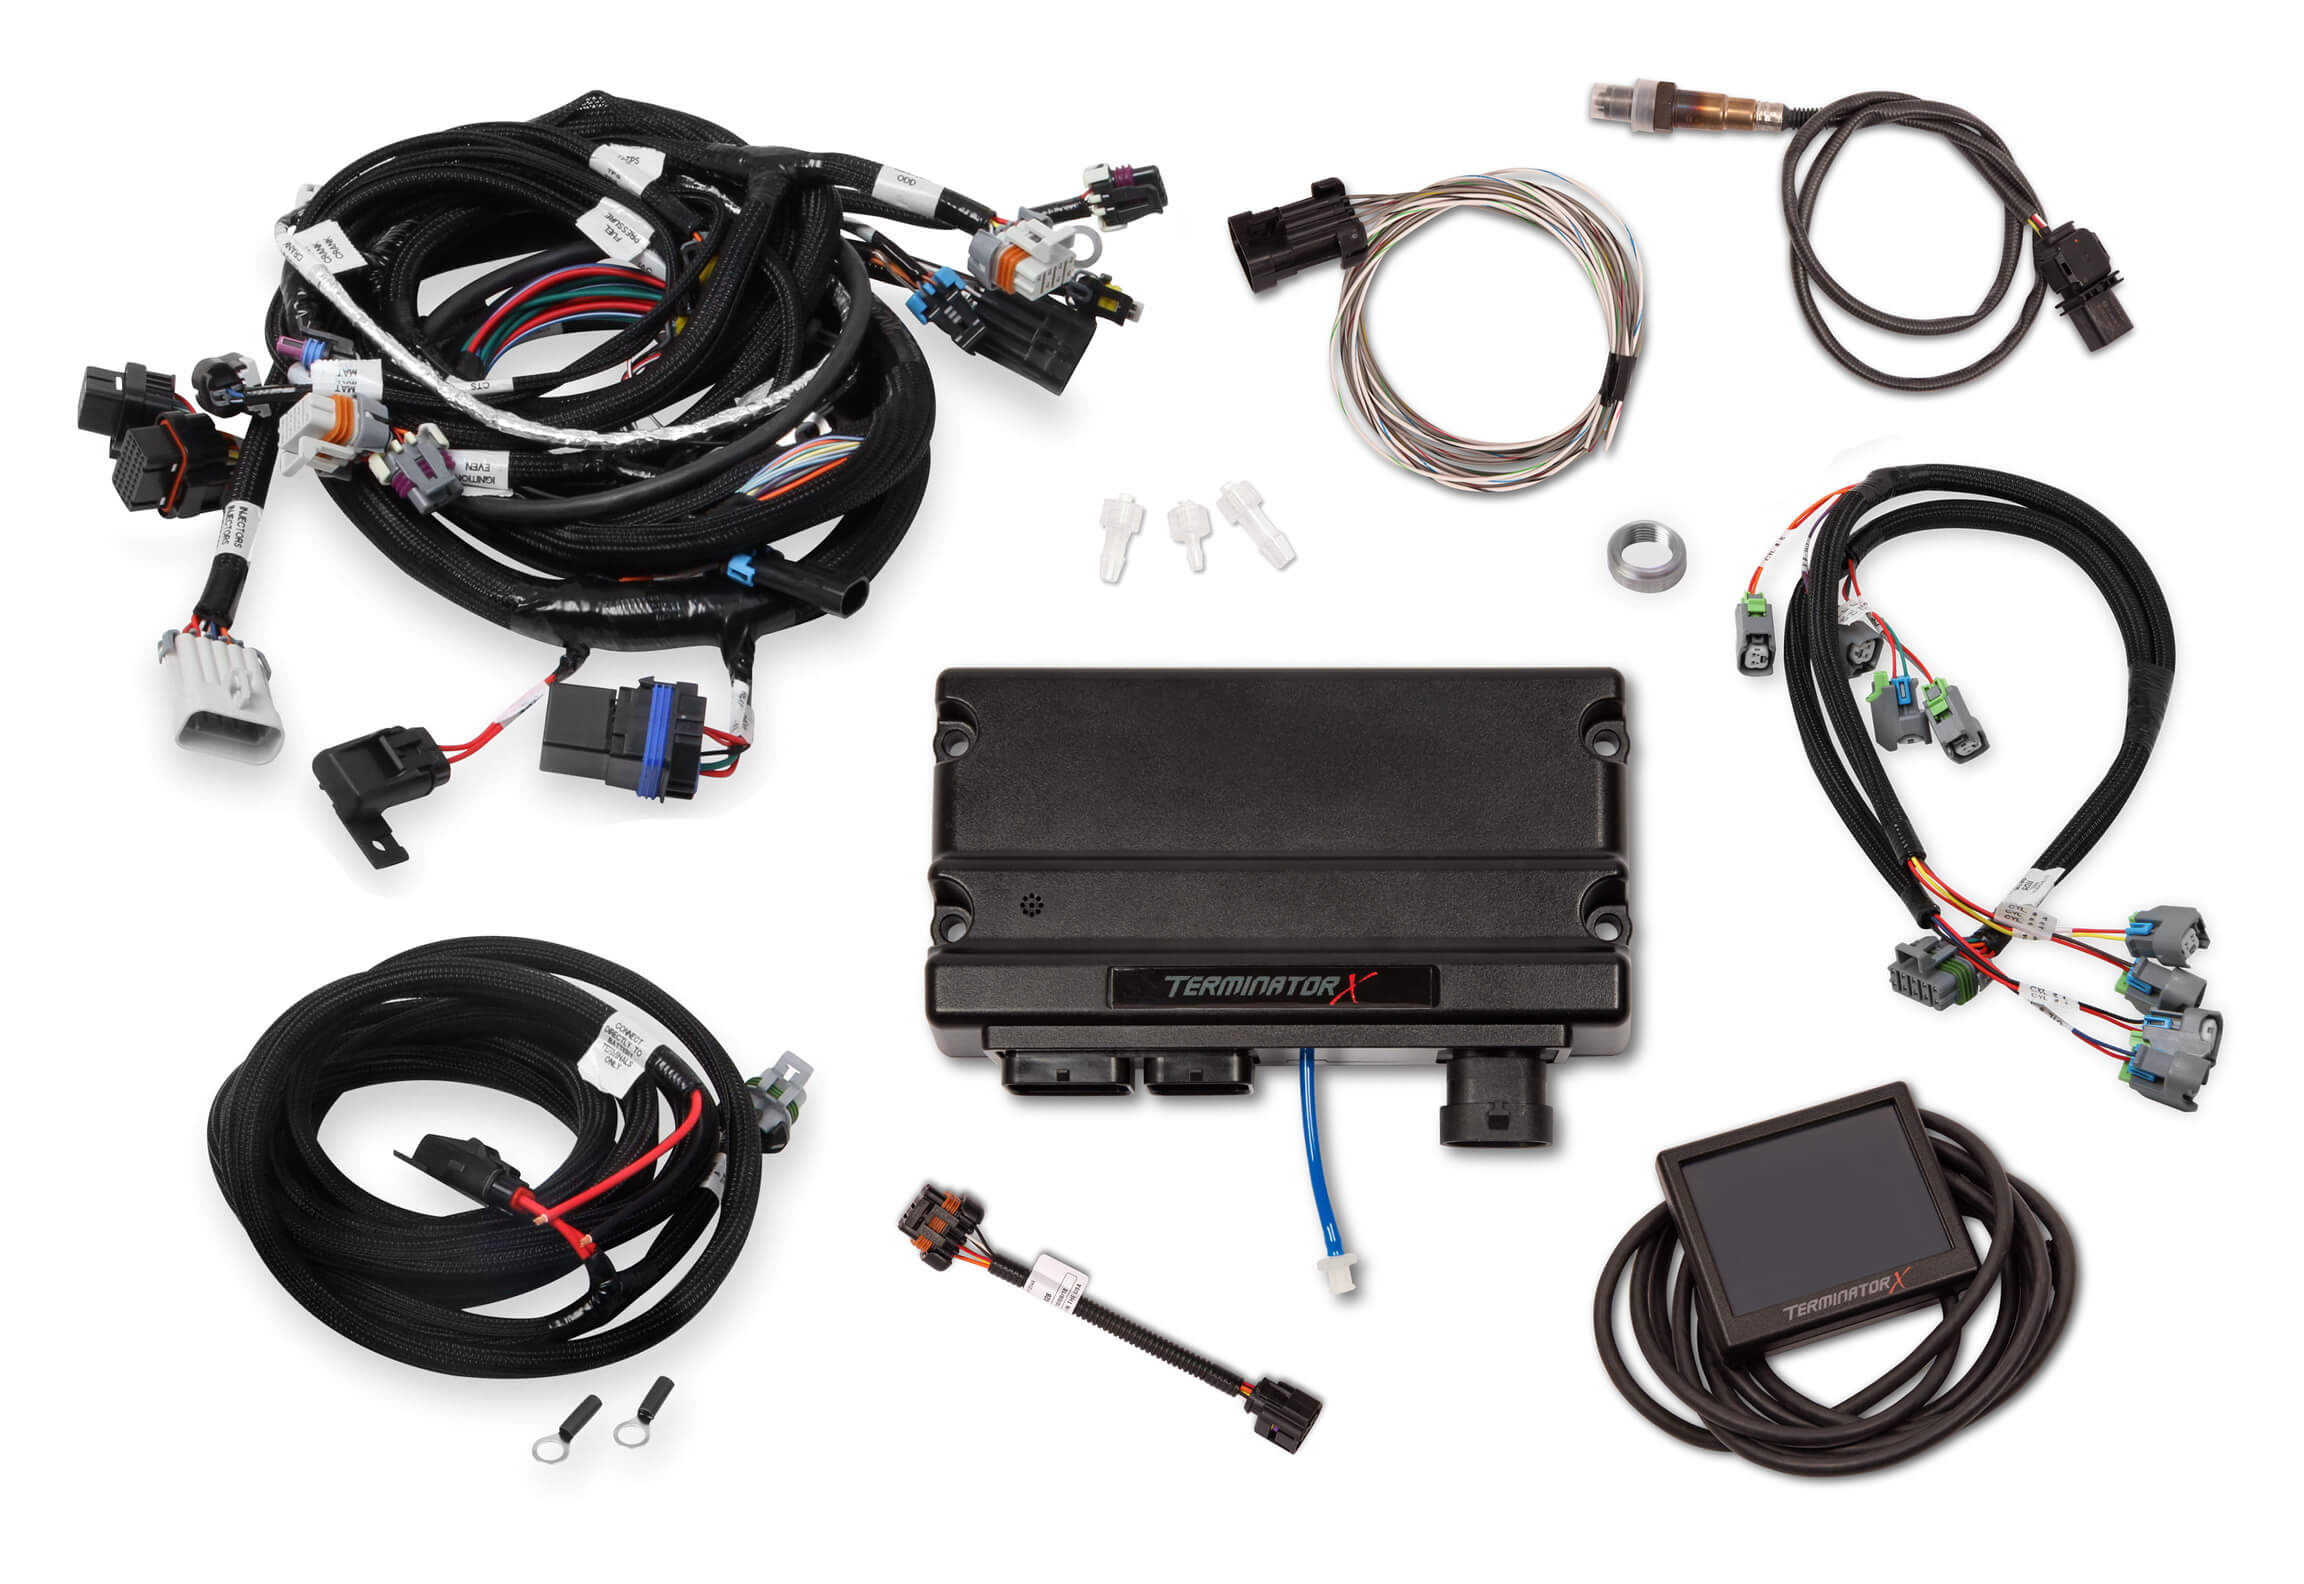 LS2/LS3 and Late 58X/4X LS Truck MPFI Kit With Terminator X OR Terminator X Max ECU